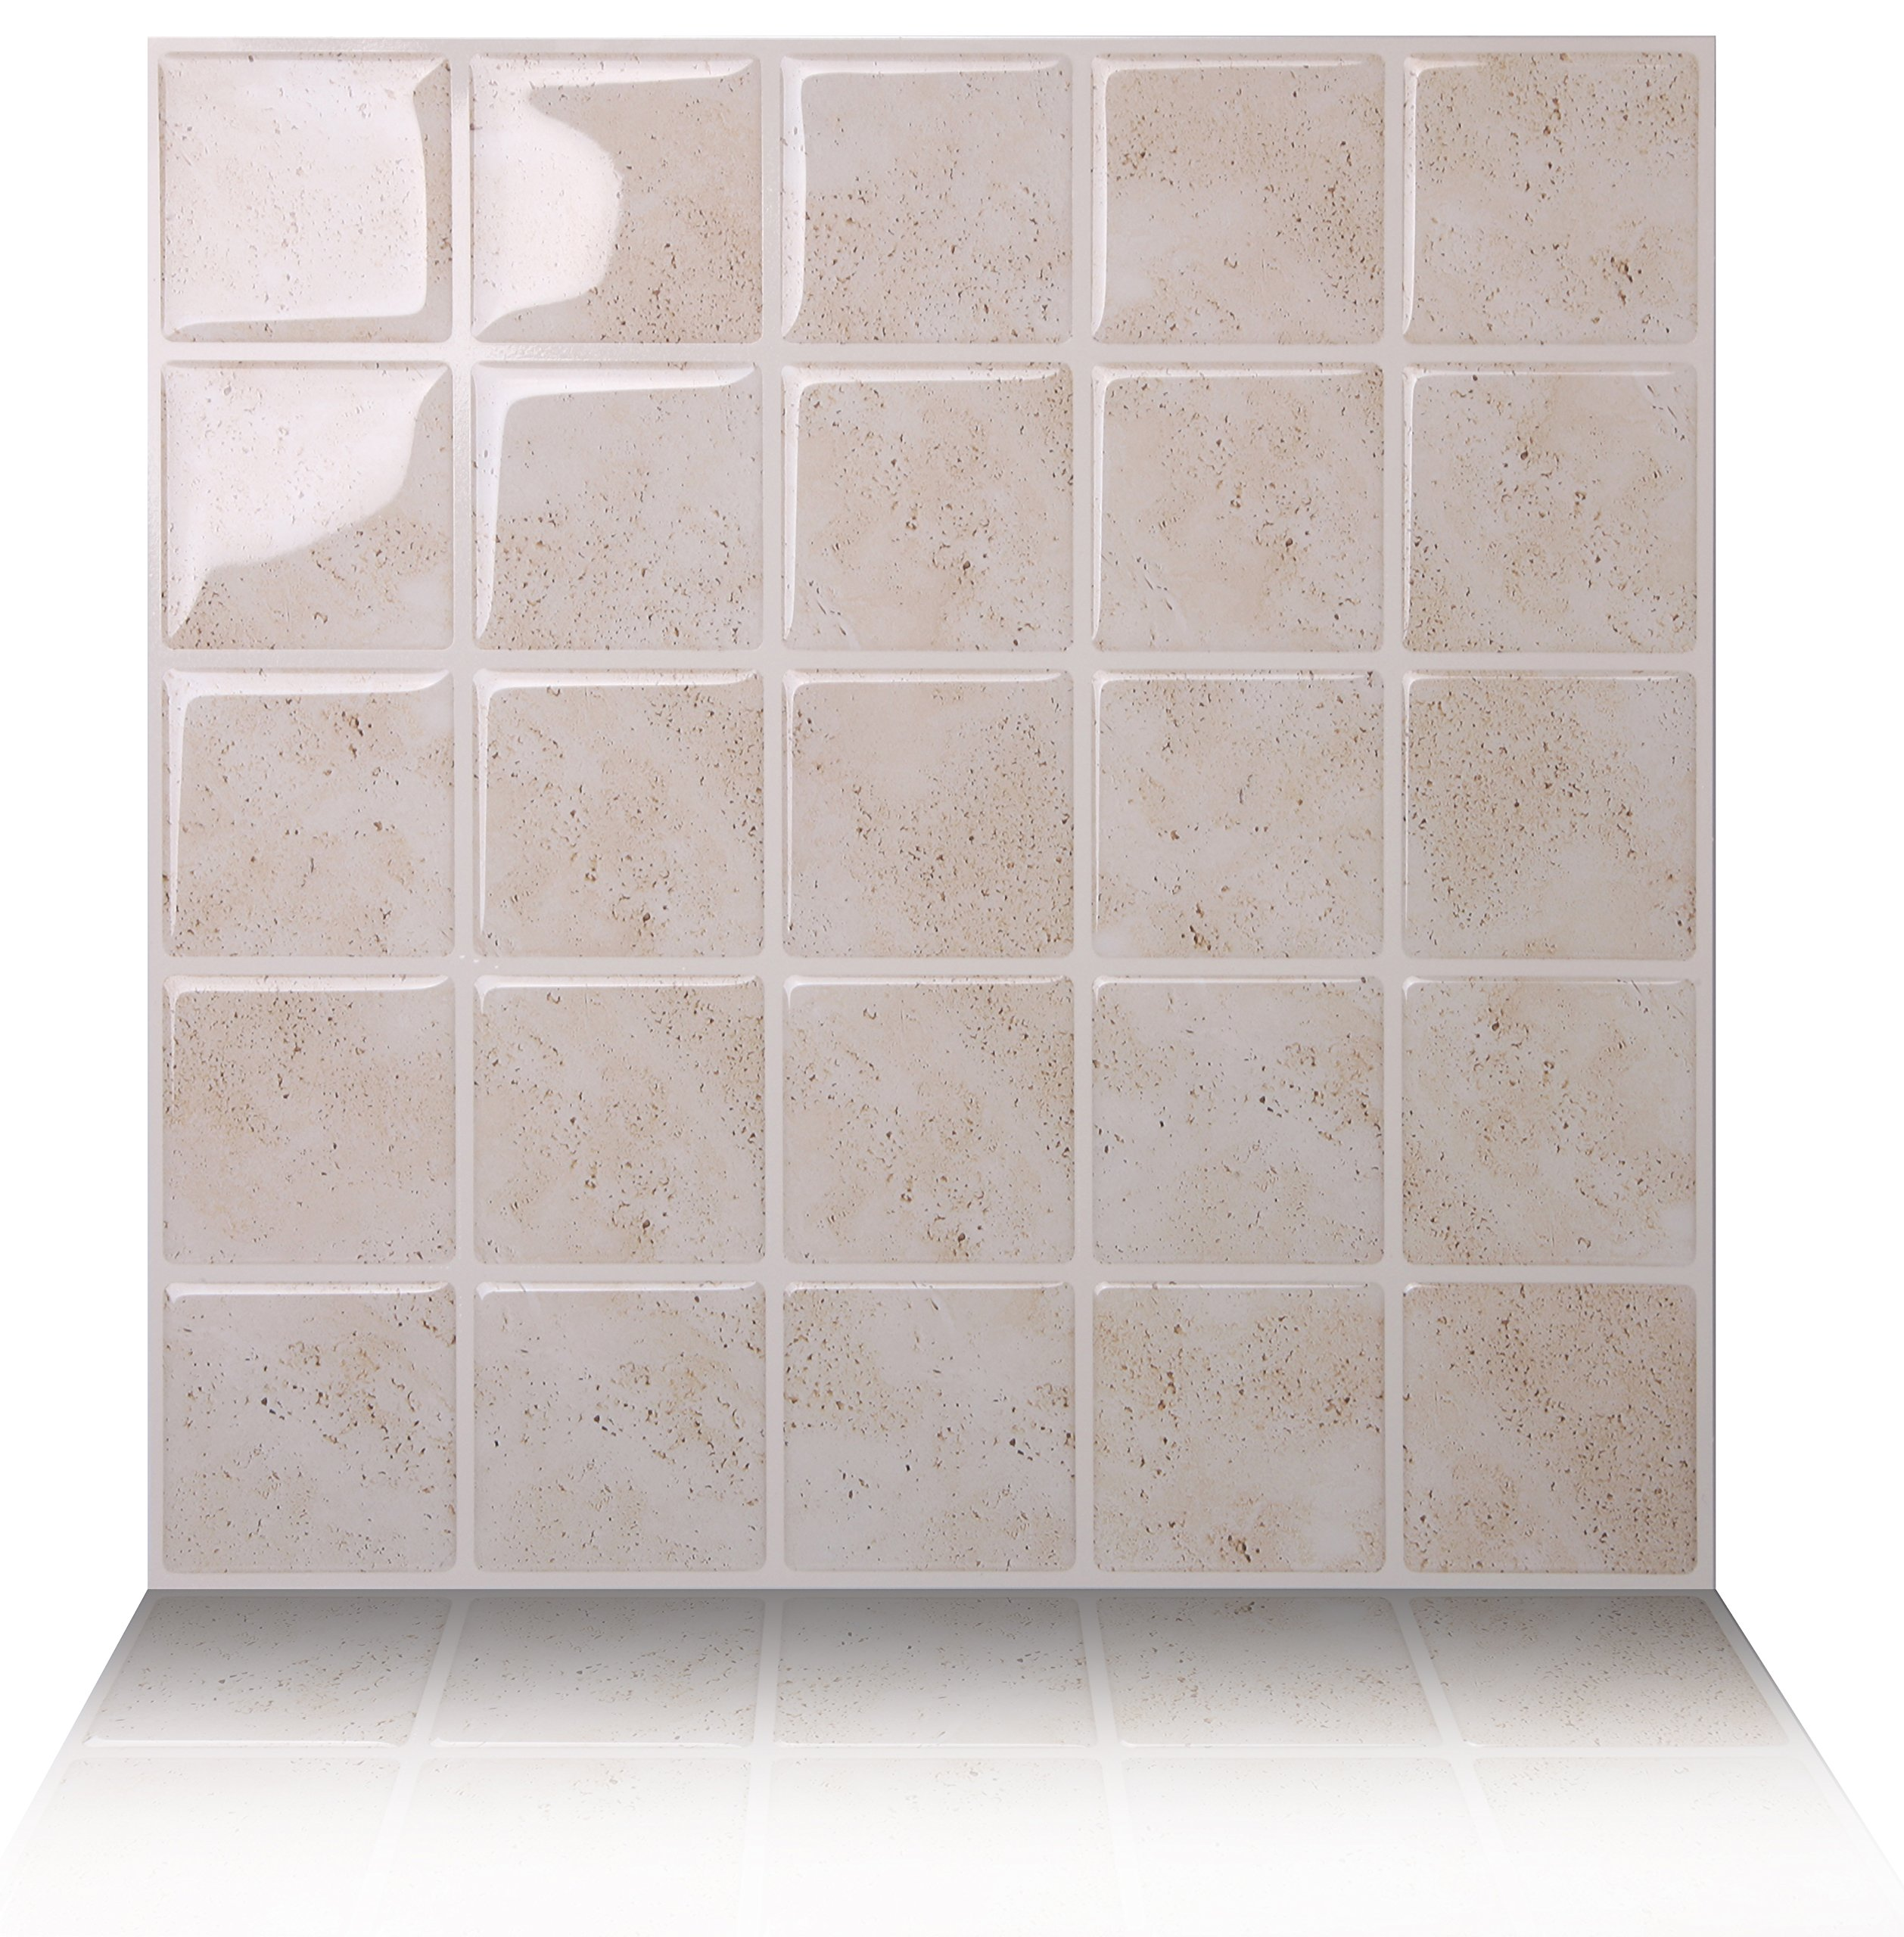 Tic Tac Tiles Anti-mold Peel and Stick Wall Tile in Marmo Travertine (10 Tiles)